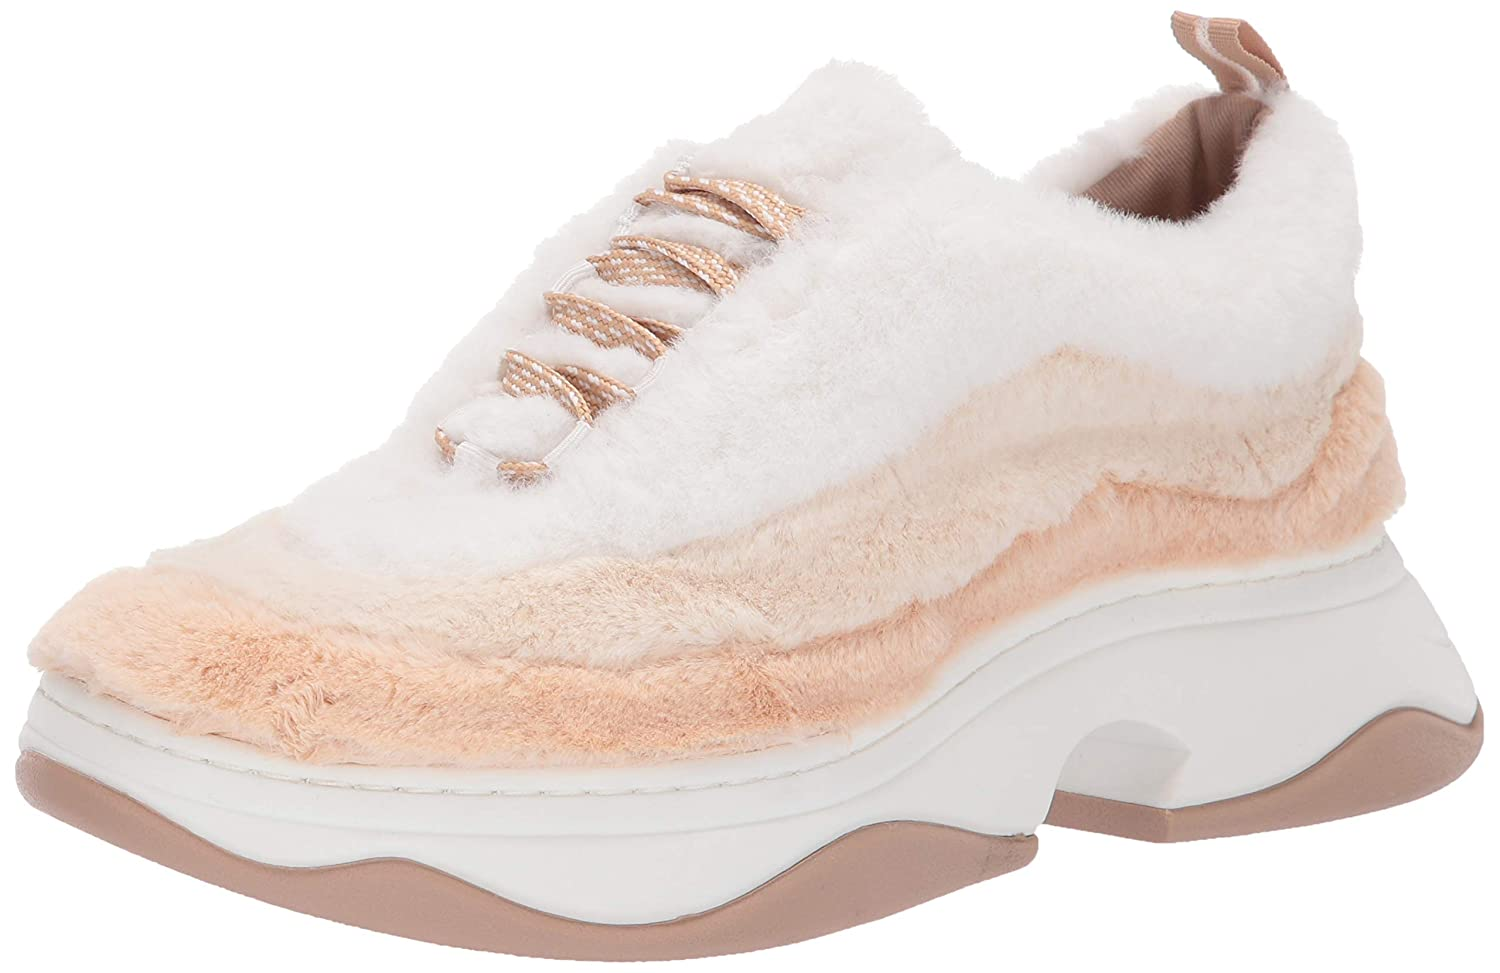 Nude Off White Katy Perry Womens The Fuzz Sneaker